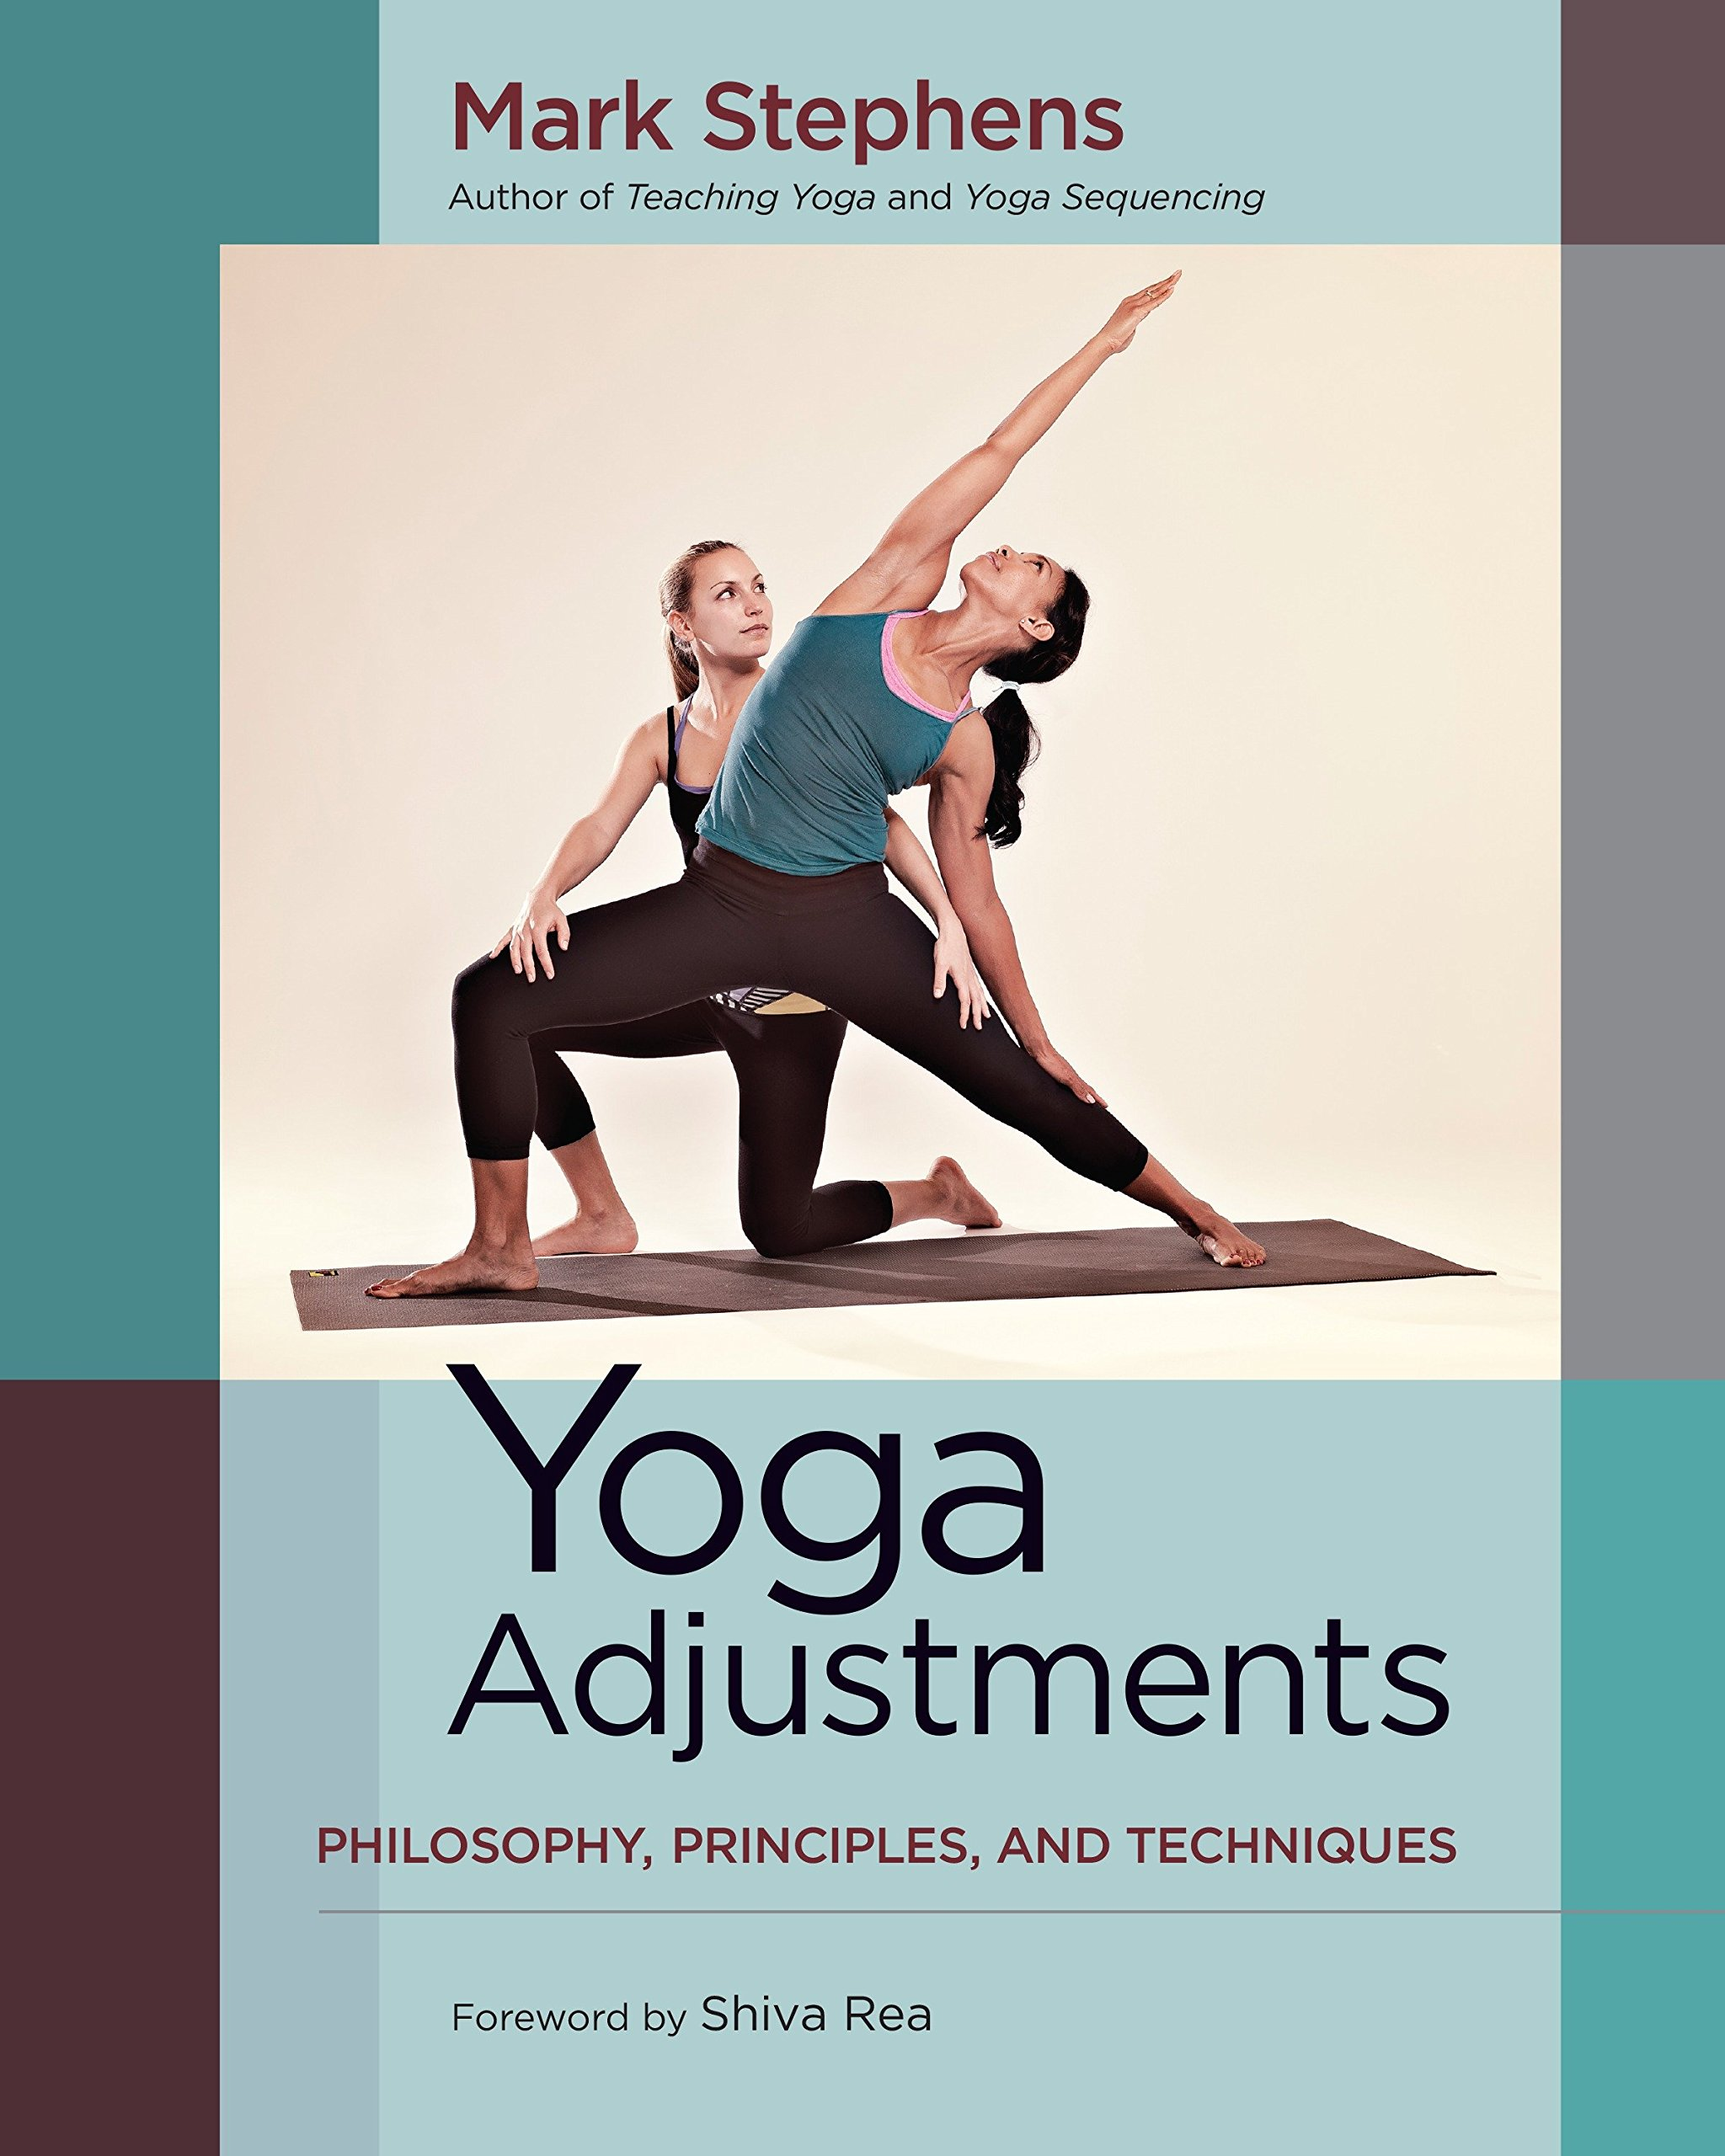 Amazon.fr - Yoga Adjustments: Philosophy, Principles, and Techniques - Mark  Stephens, Shiva Rea - Livres